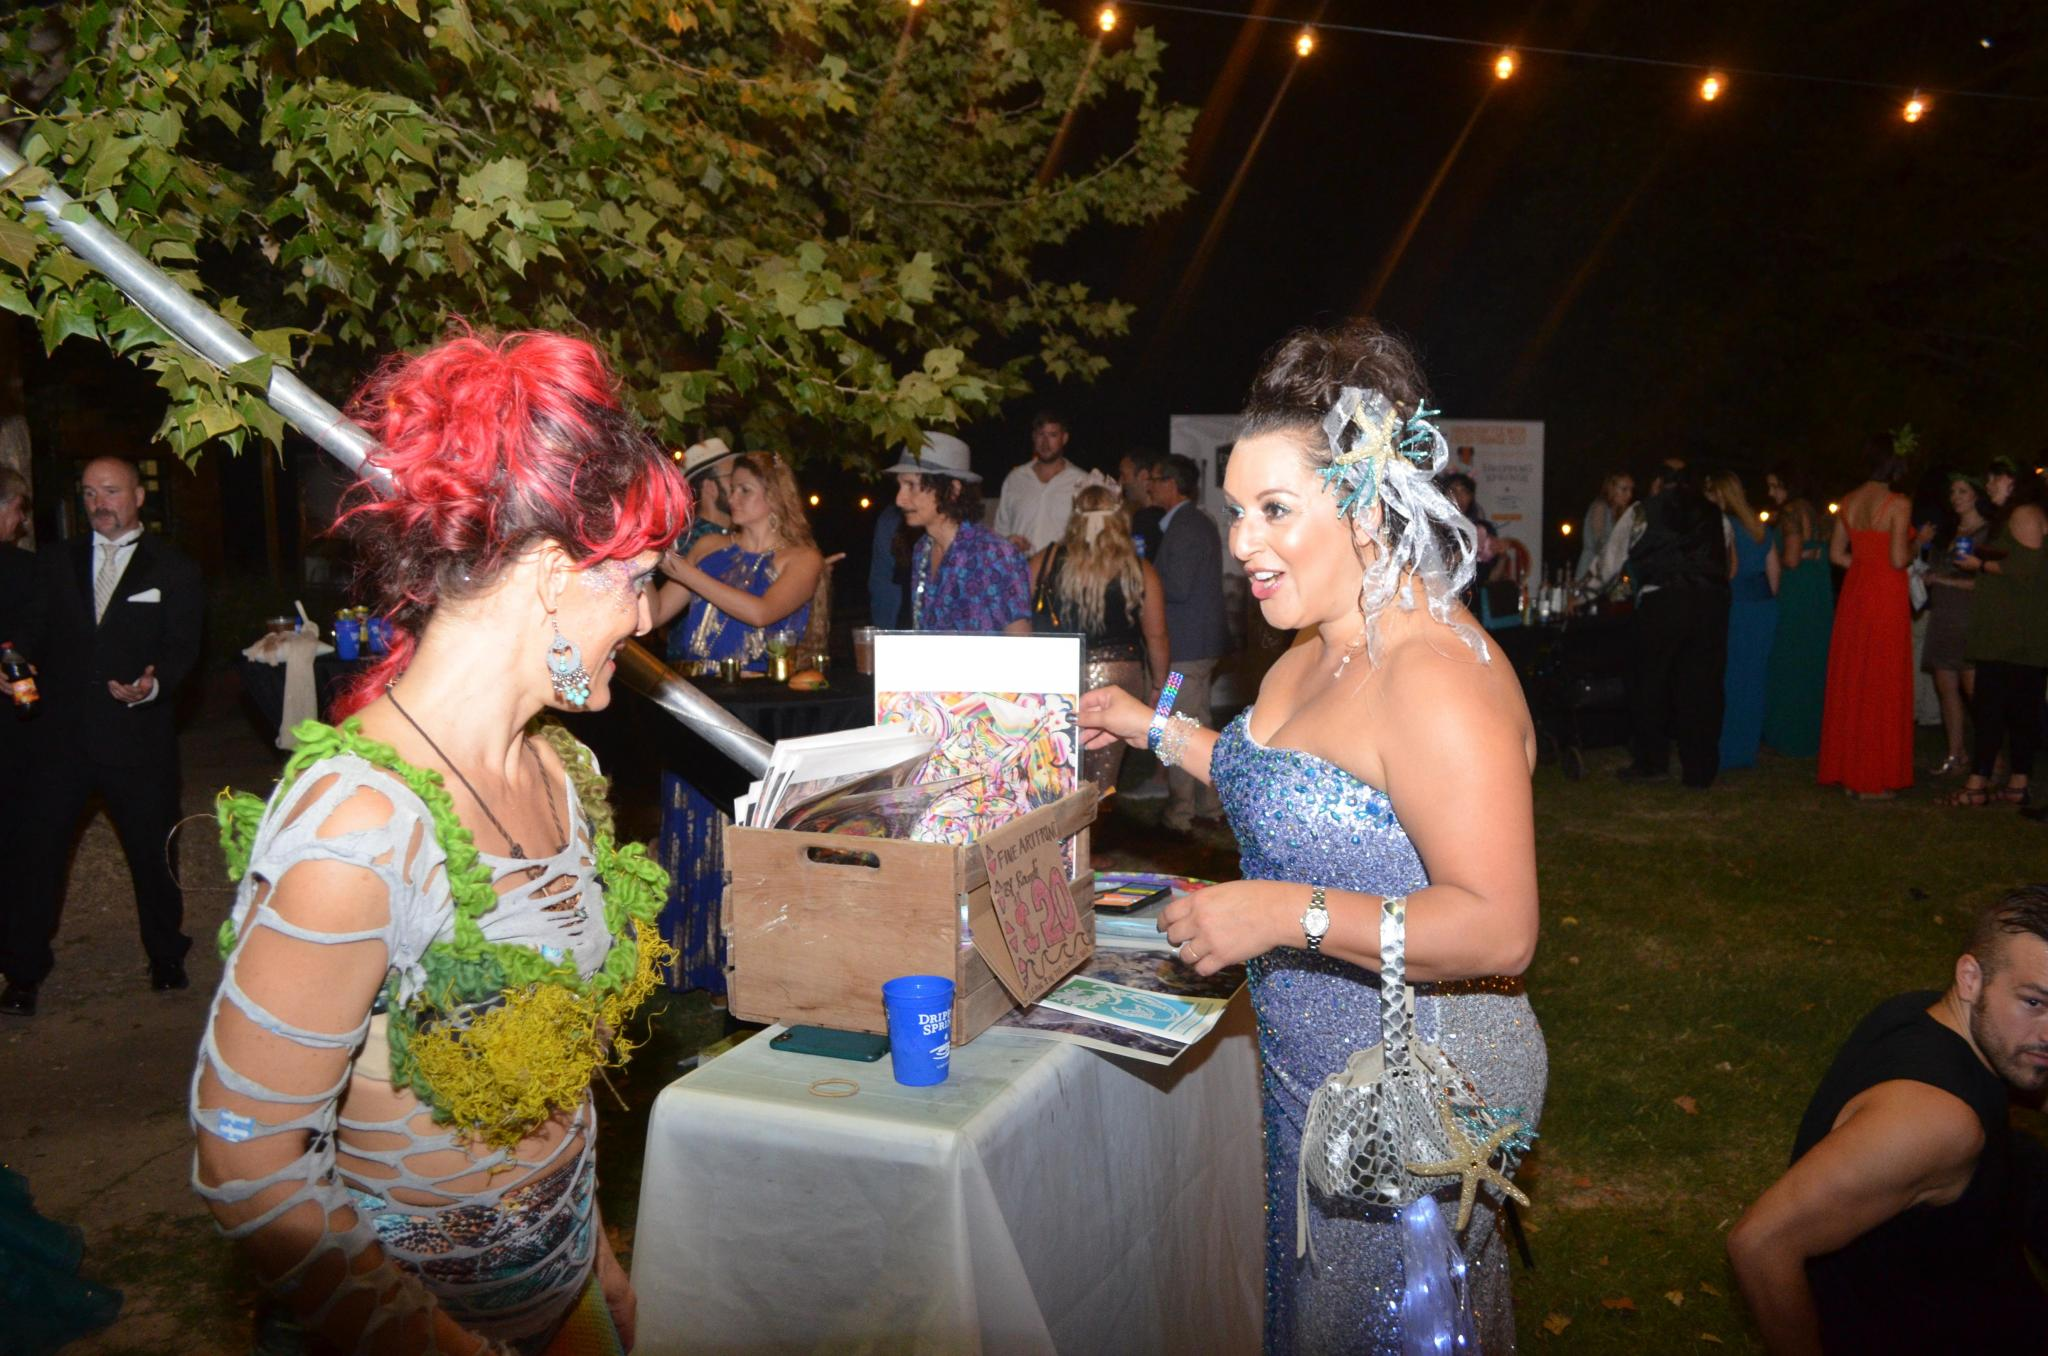 Artists and vendors were onsite selling mermaid-inspired artwork.